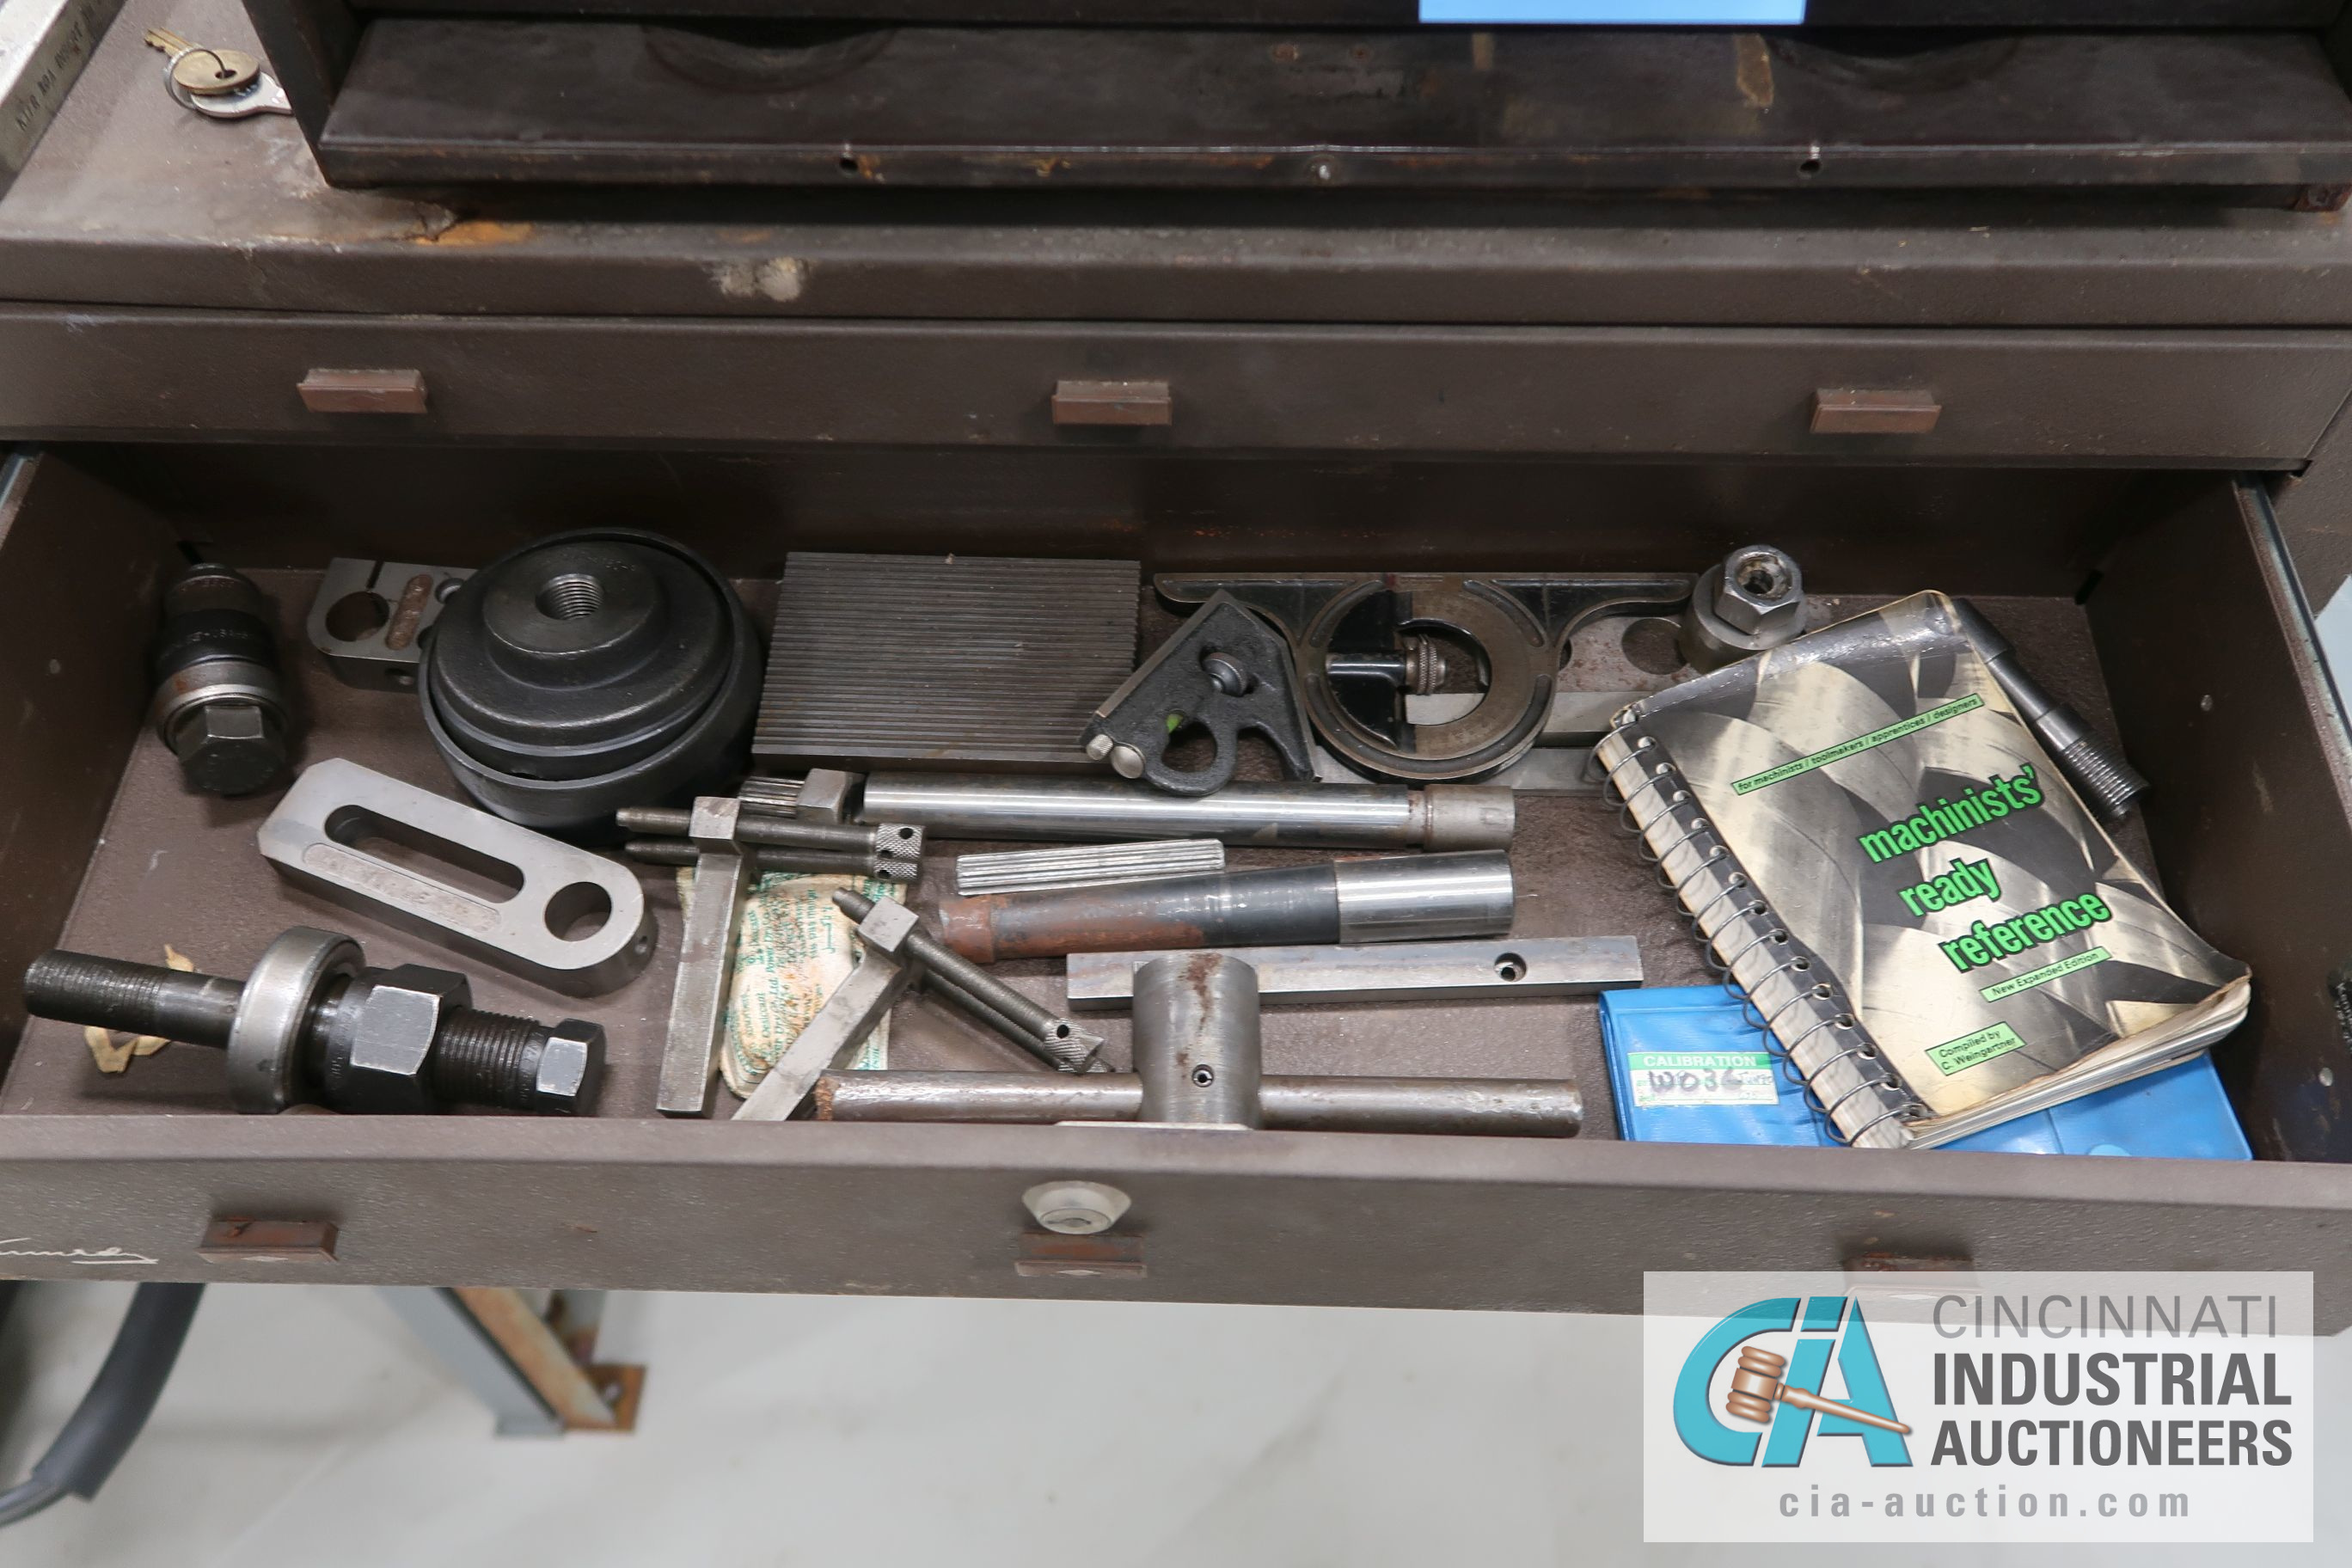 KENNEDY MACHINIST TOOL CHESTS WITH MISCELLANEOUS - Image 7 of 7